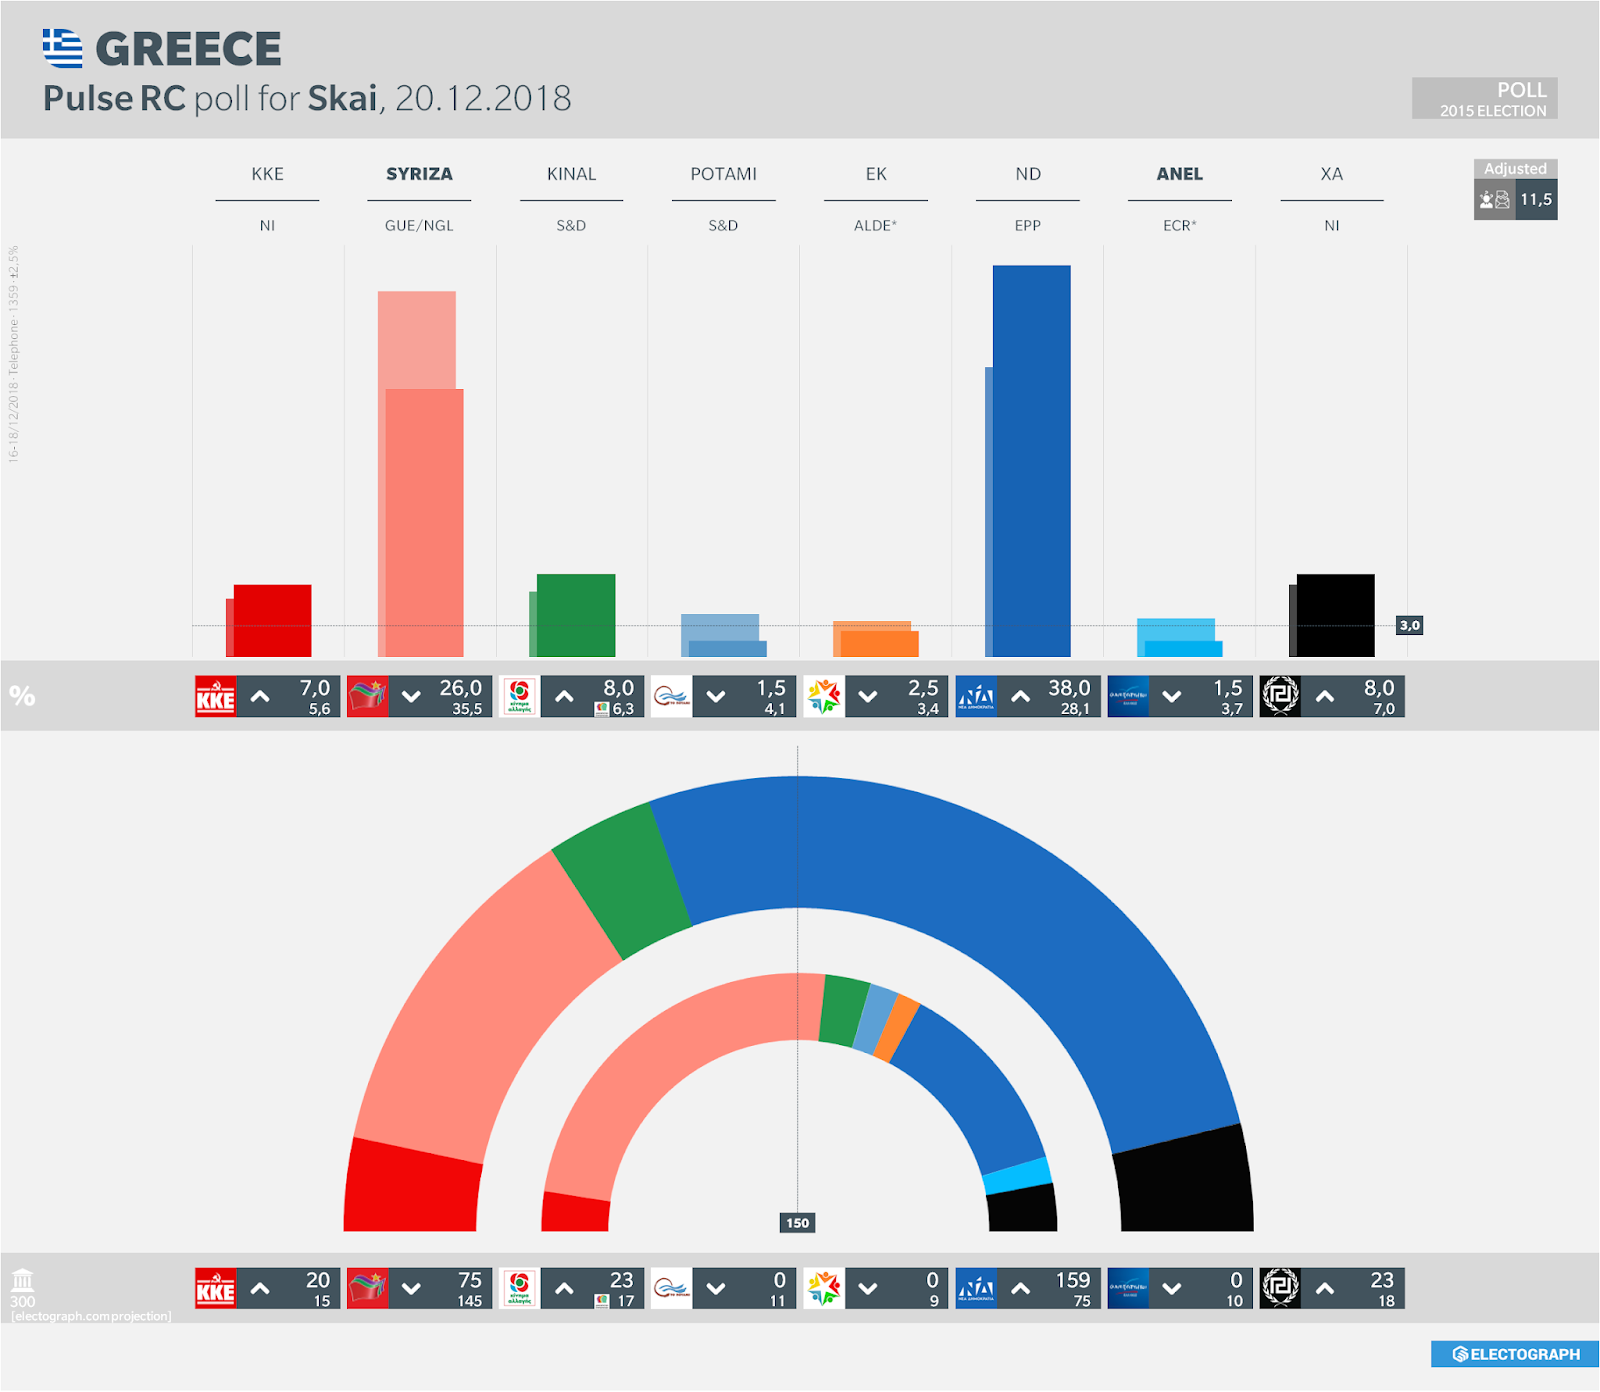 GREECE: Pulse RC poll chart for SKAI, 20 December 2018